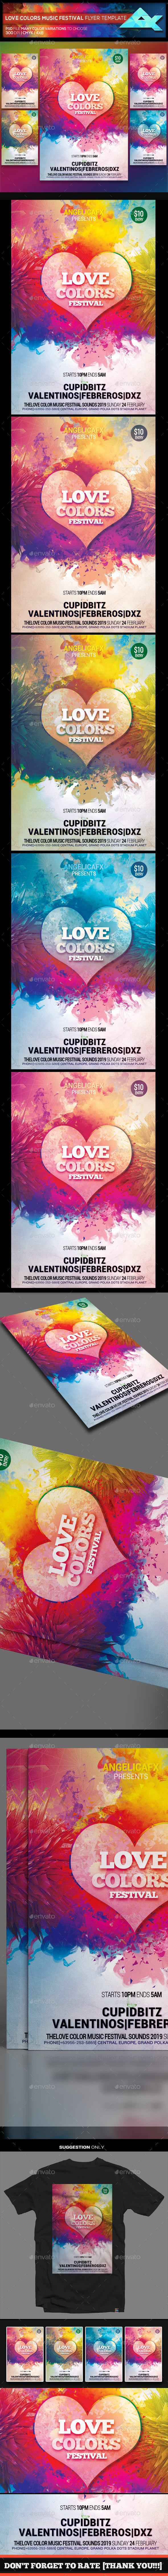 GraphicRiver Love Colors Music Festival Flyer Template 21025543